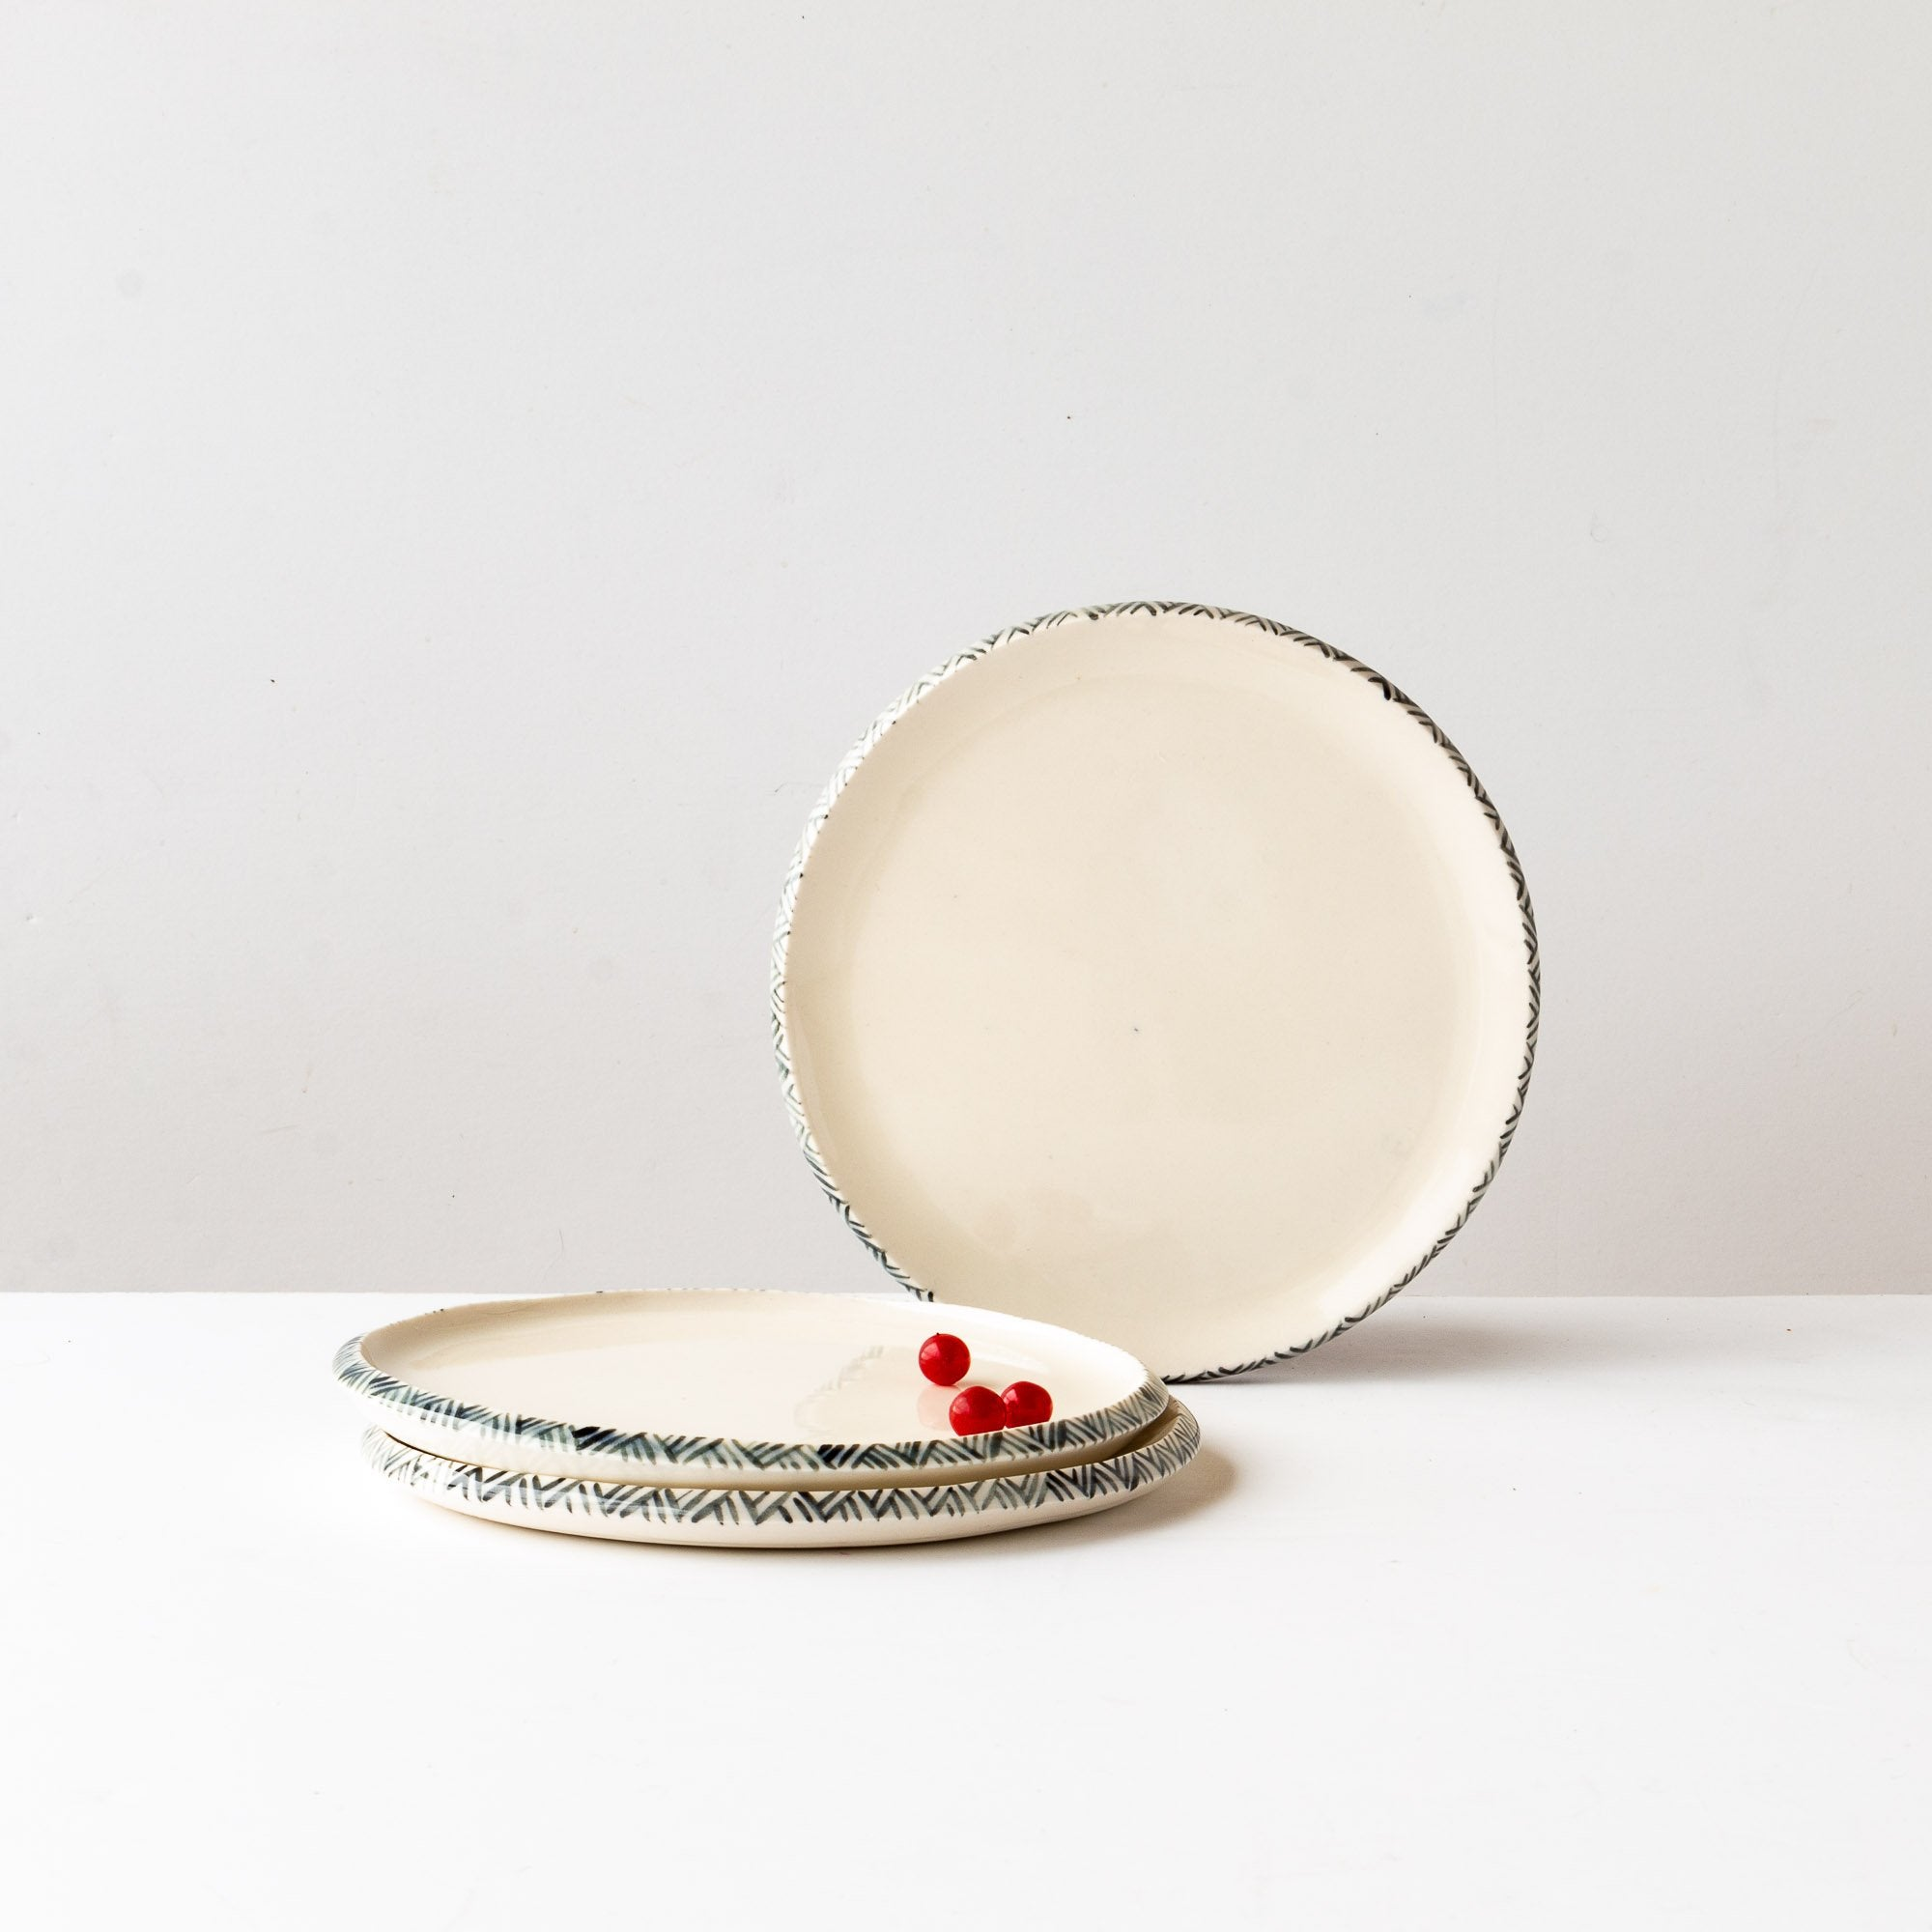 Three Small Porcelain Plates With Adorned Painted Frieze Rim - Sold by Chic & Basta